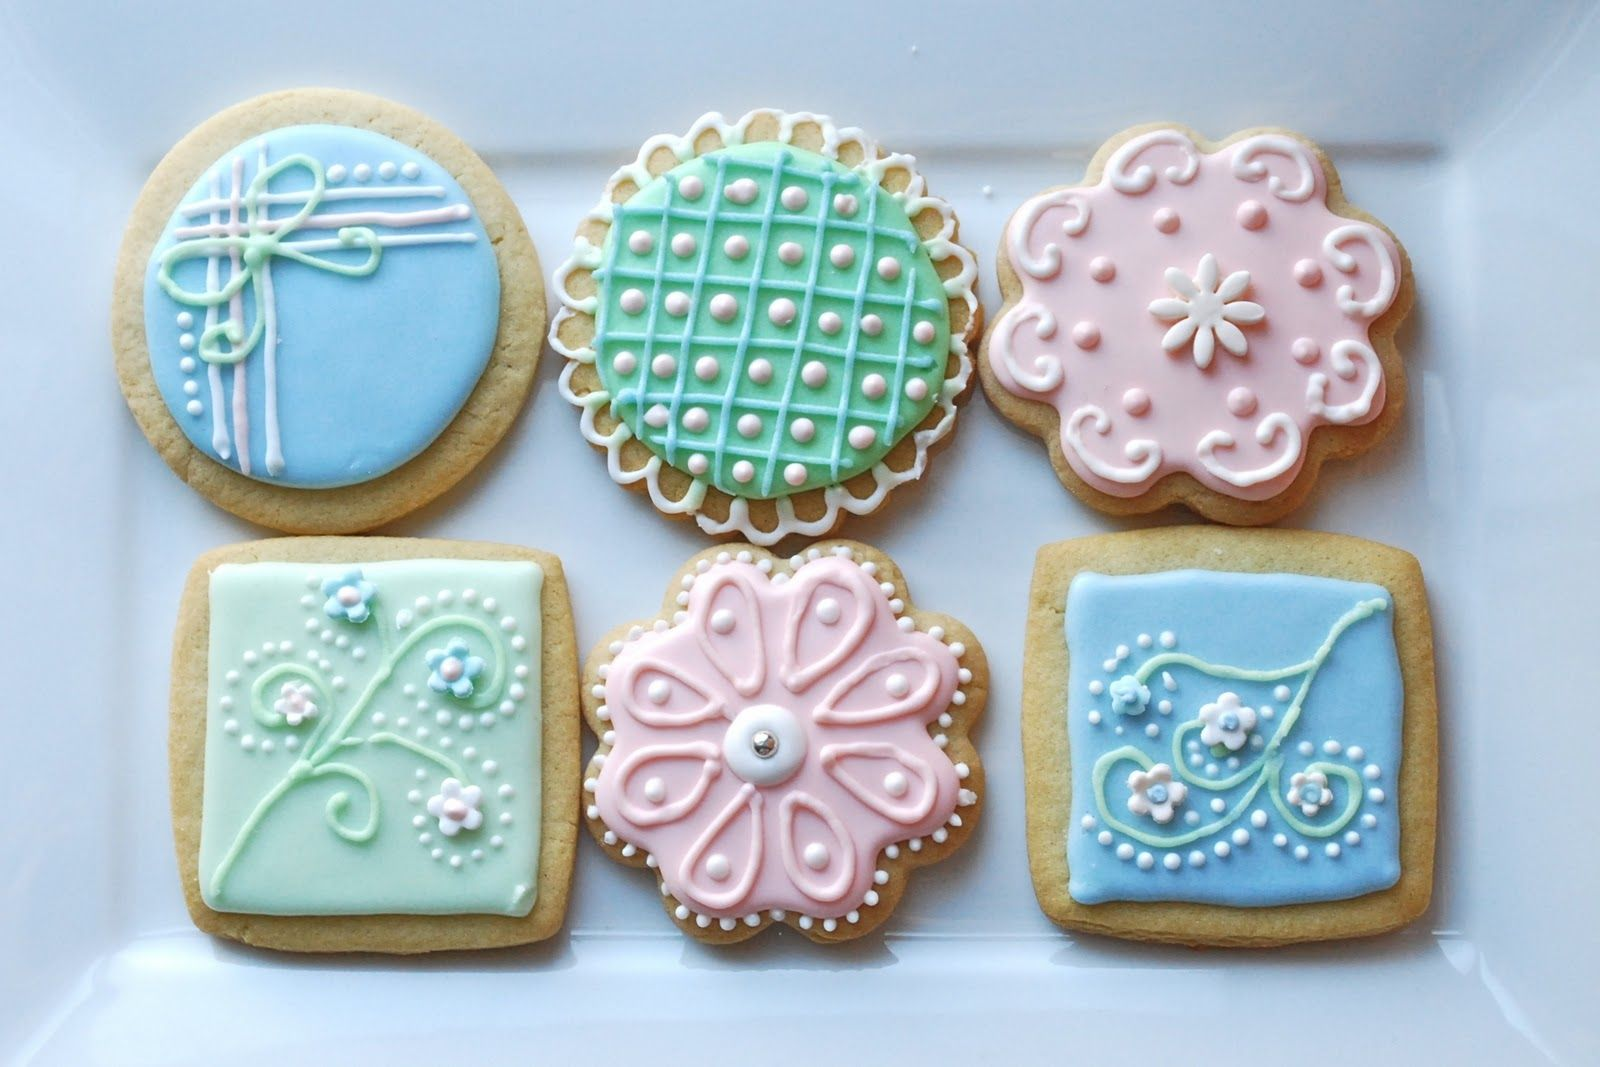 sugar cookie decorating   Ideas about Decorating Sugar Cookies     sugar cookie decorating   Ideas about Decorating Sugar Cookies